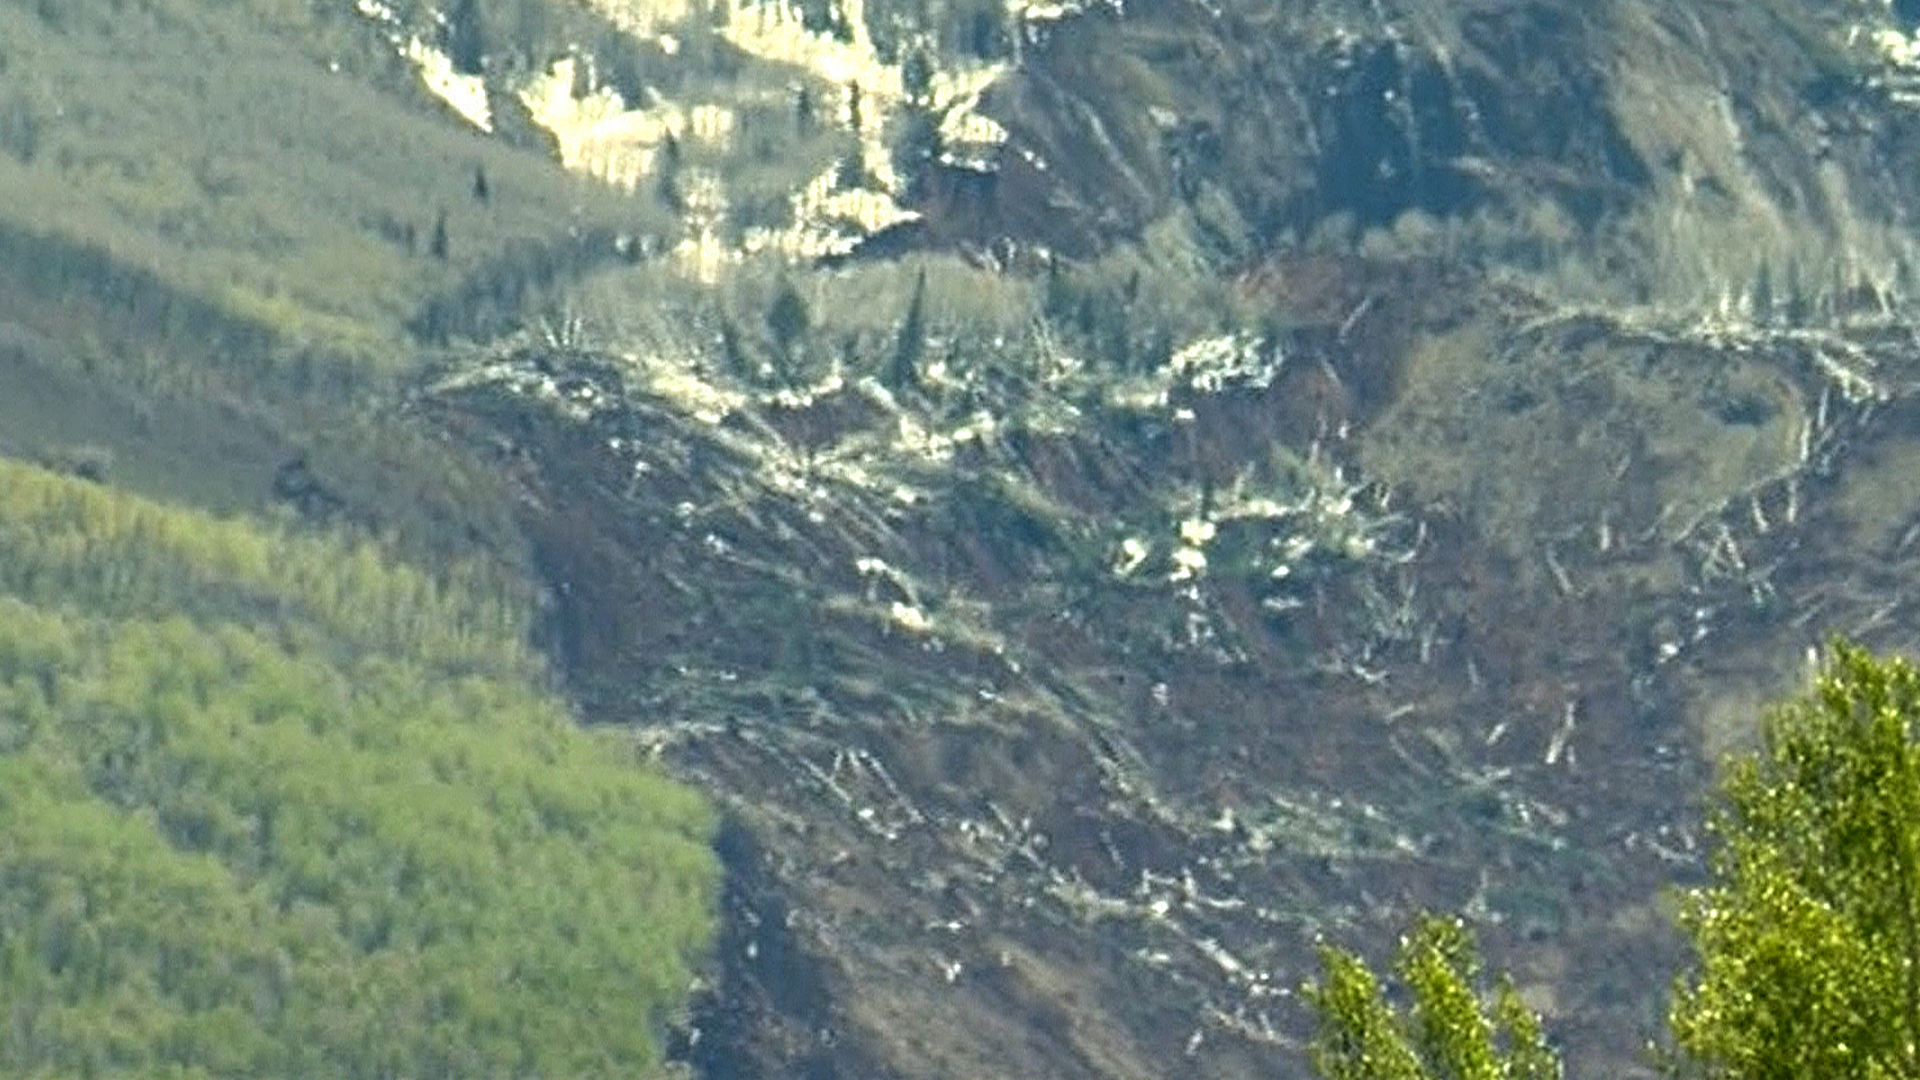 Three Missing Men Identified in Colorado Mudslide